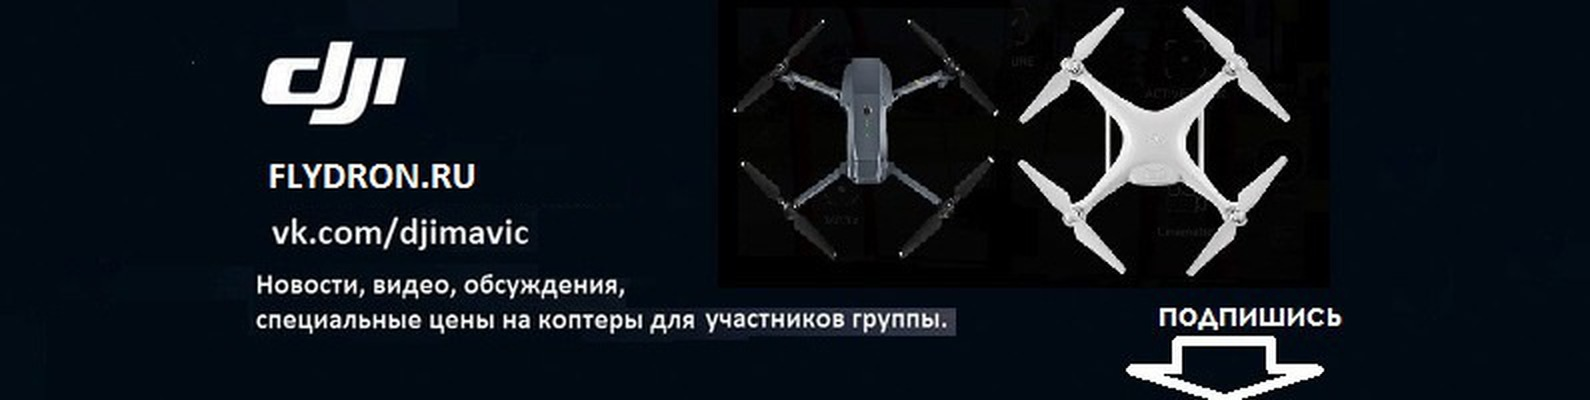 Купить mavic combo за копейки в ульяновск чехол mavic air напрямую с завода